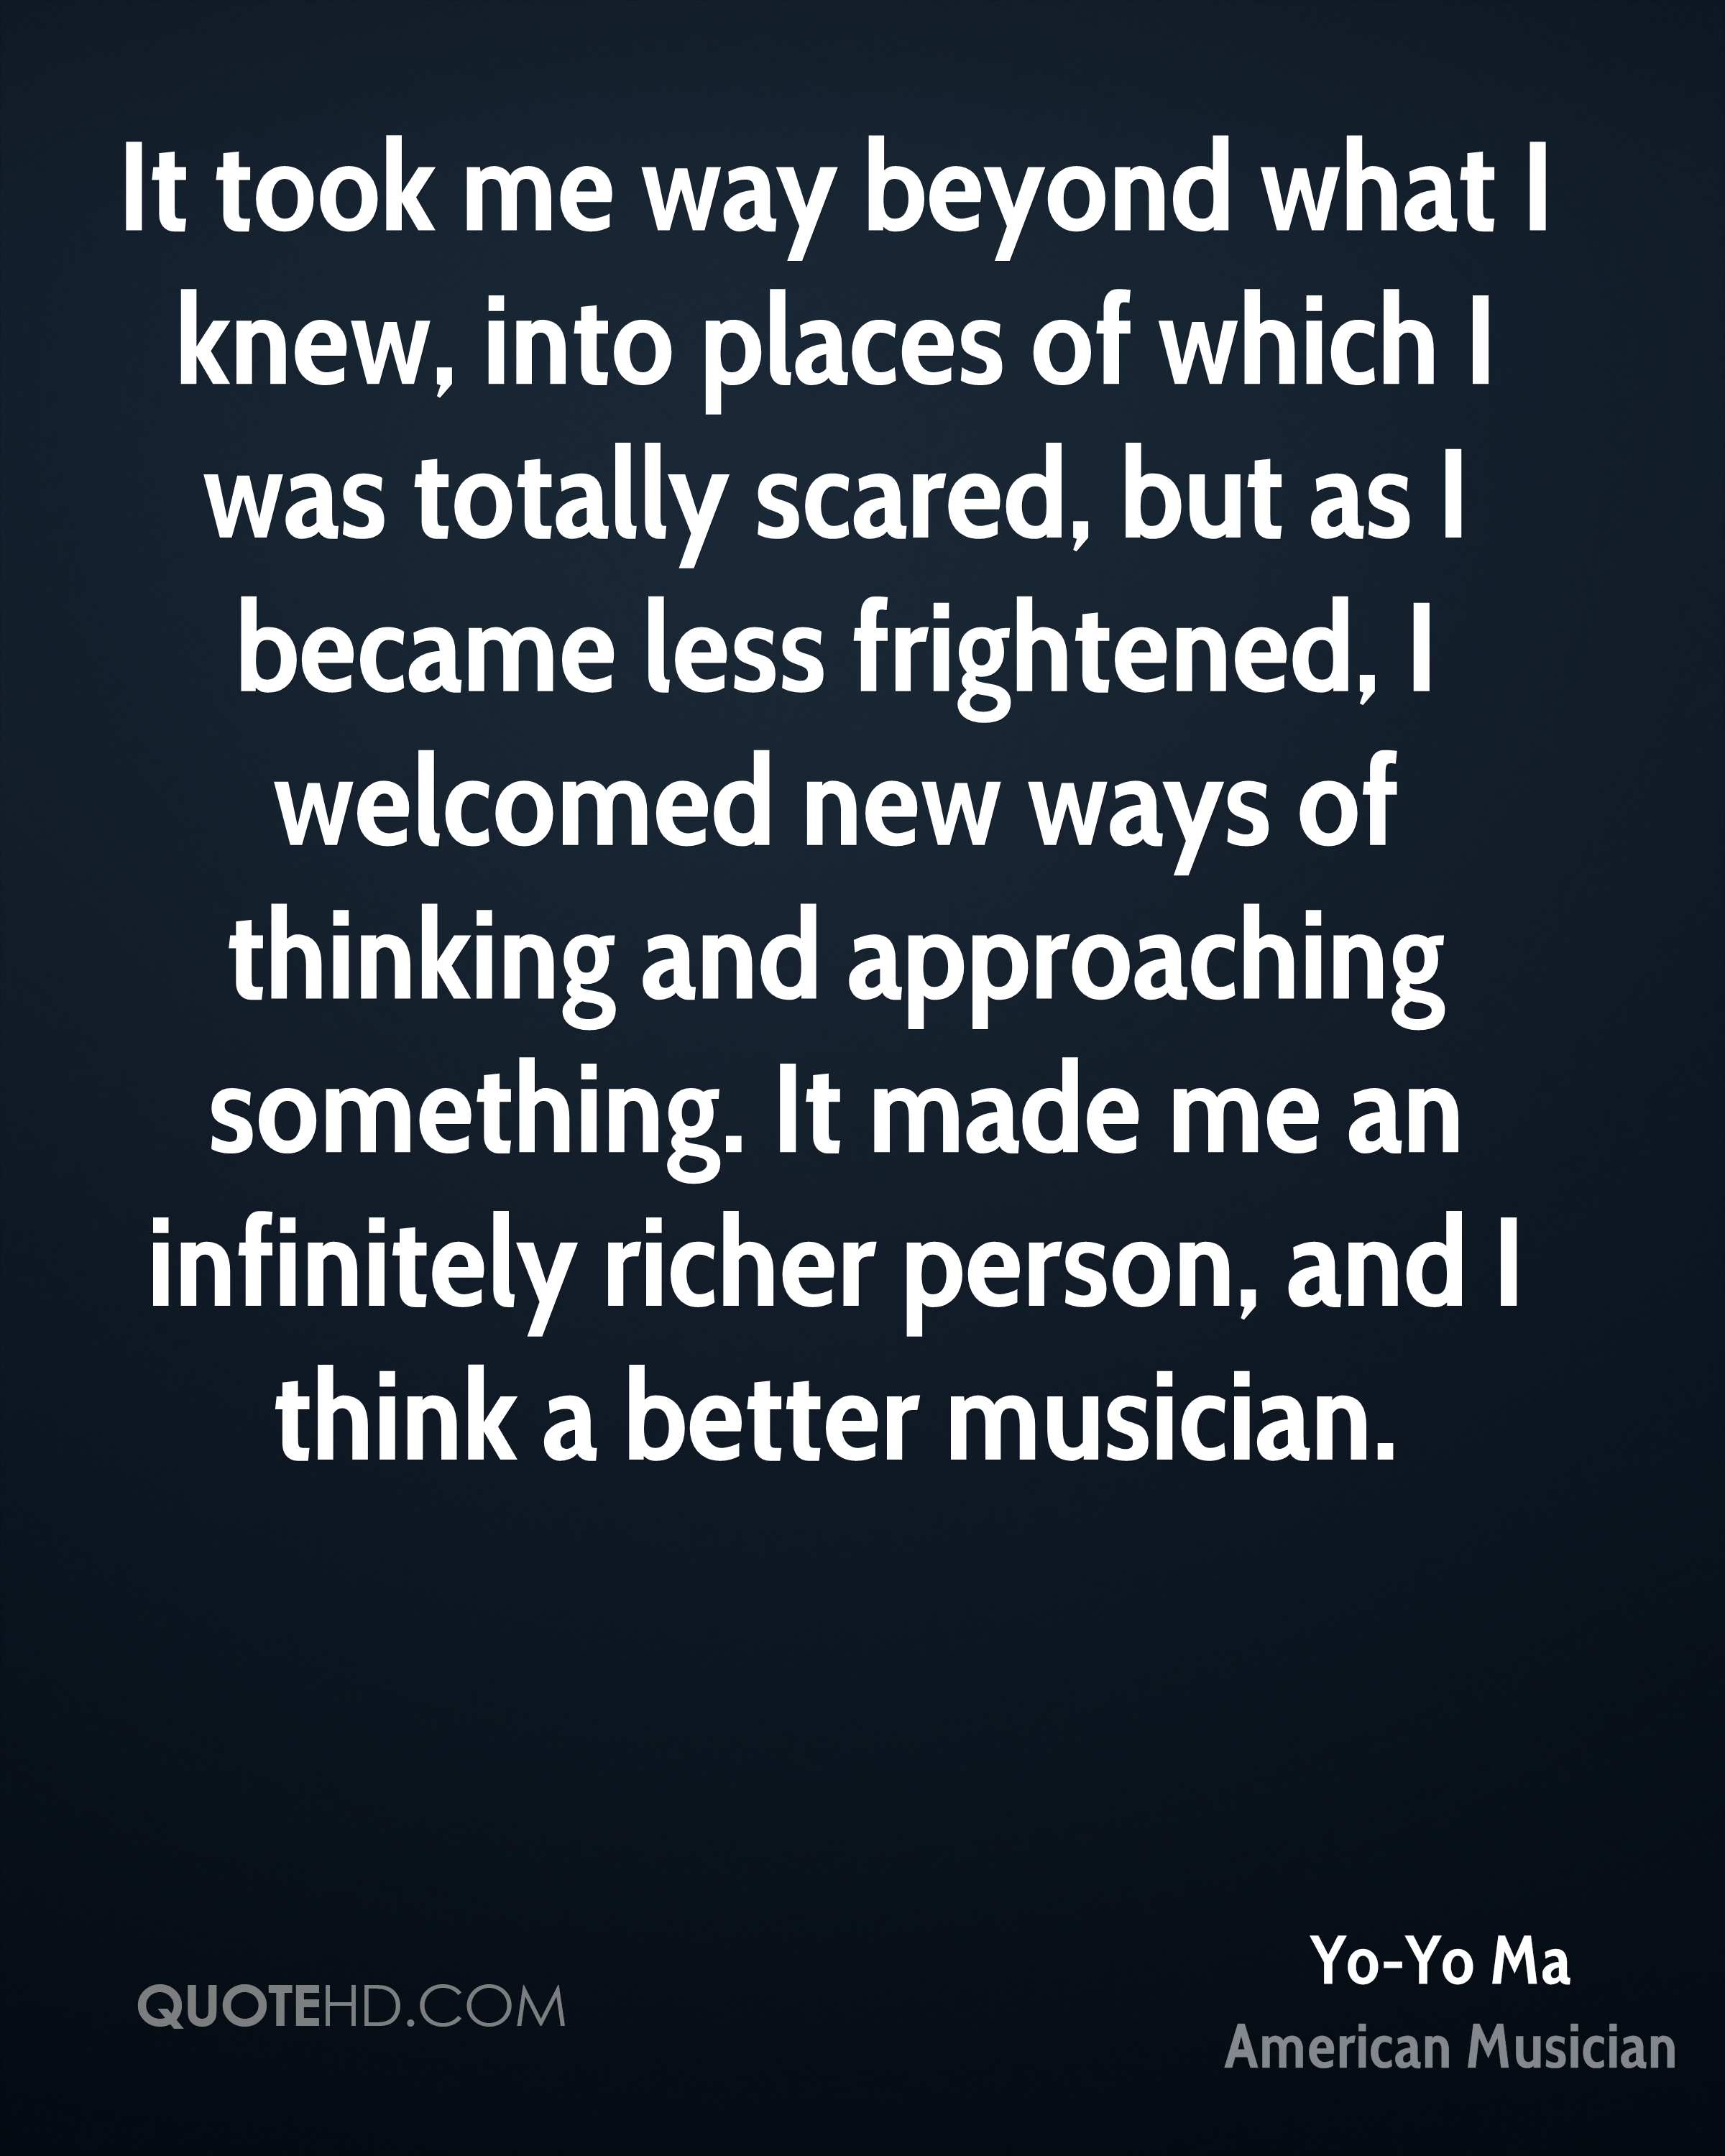 It took me way beyond what I knew, into places of which I was totally scared, but as I became less frightened, I welcomed new ways of thinking and approaching something. It made me an infinitely richer person, and I think a better musician.